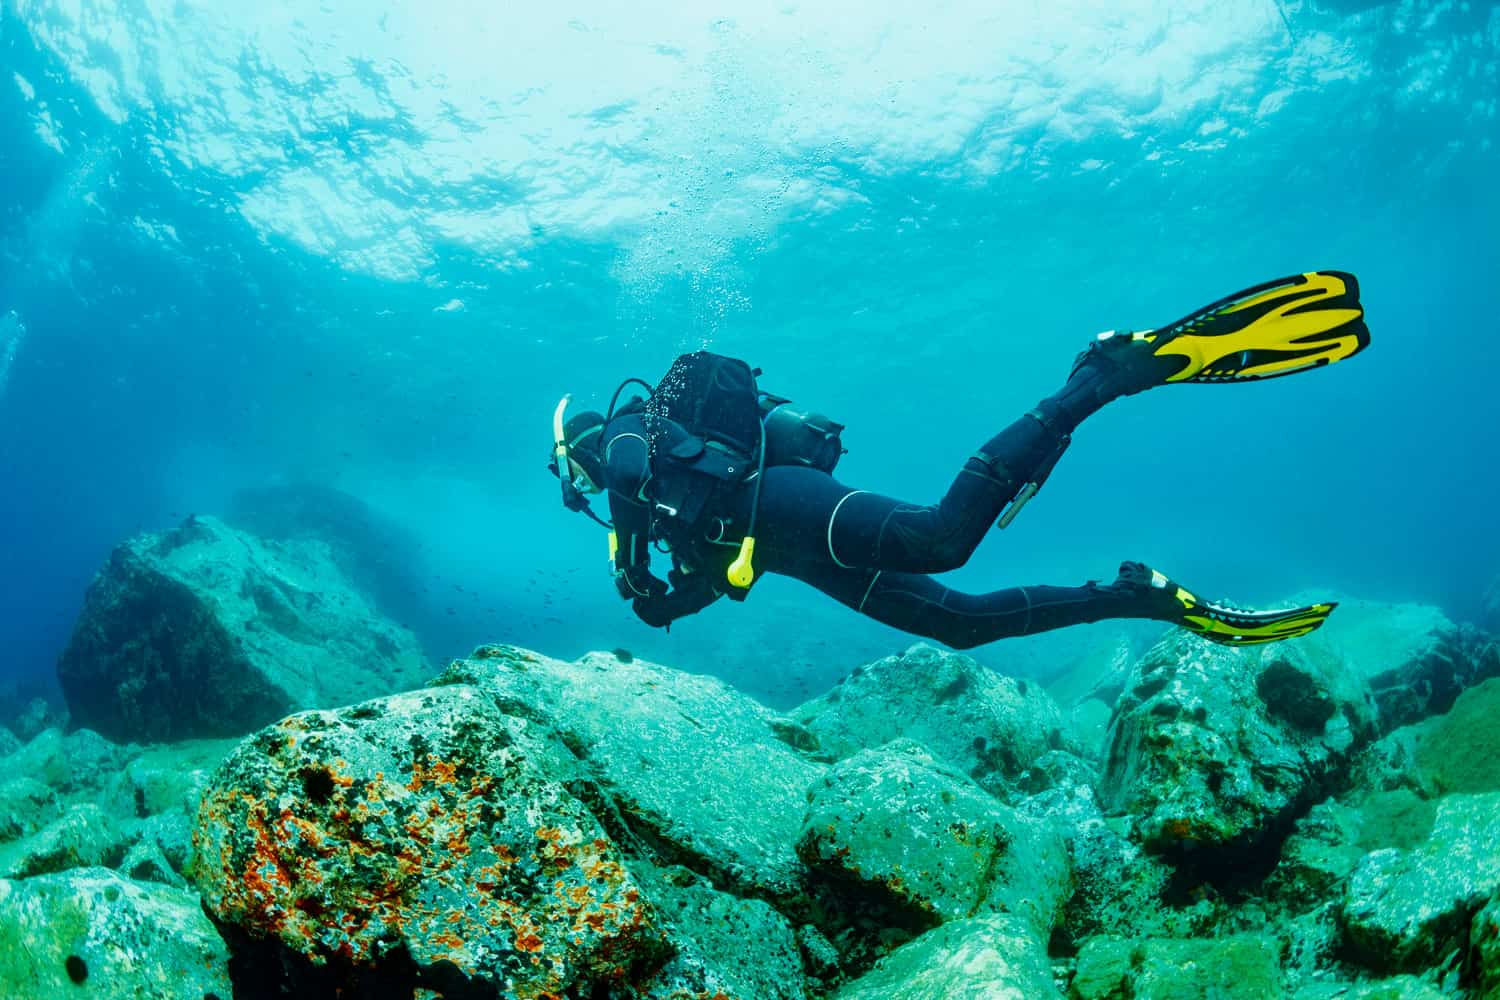 A scuba diver going down the coral reefs of the ocean